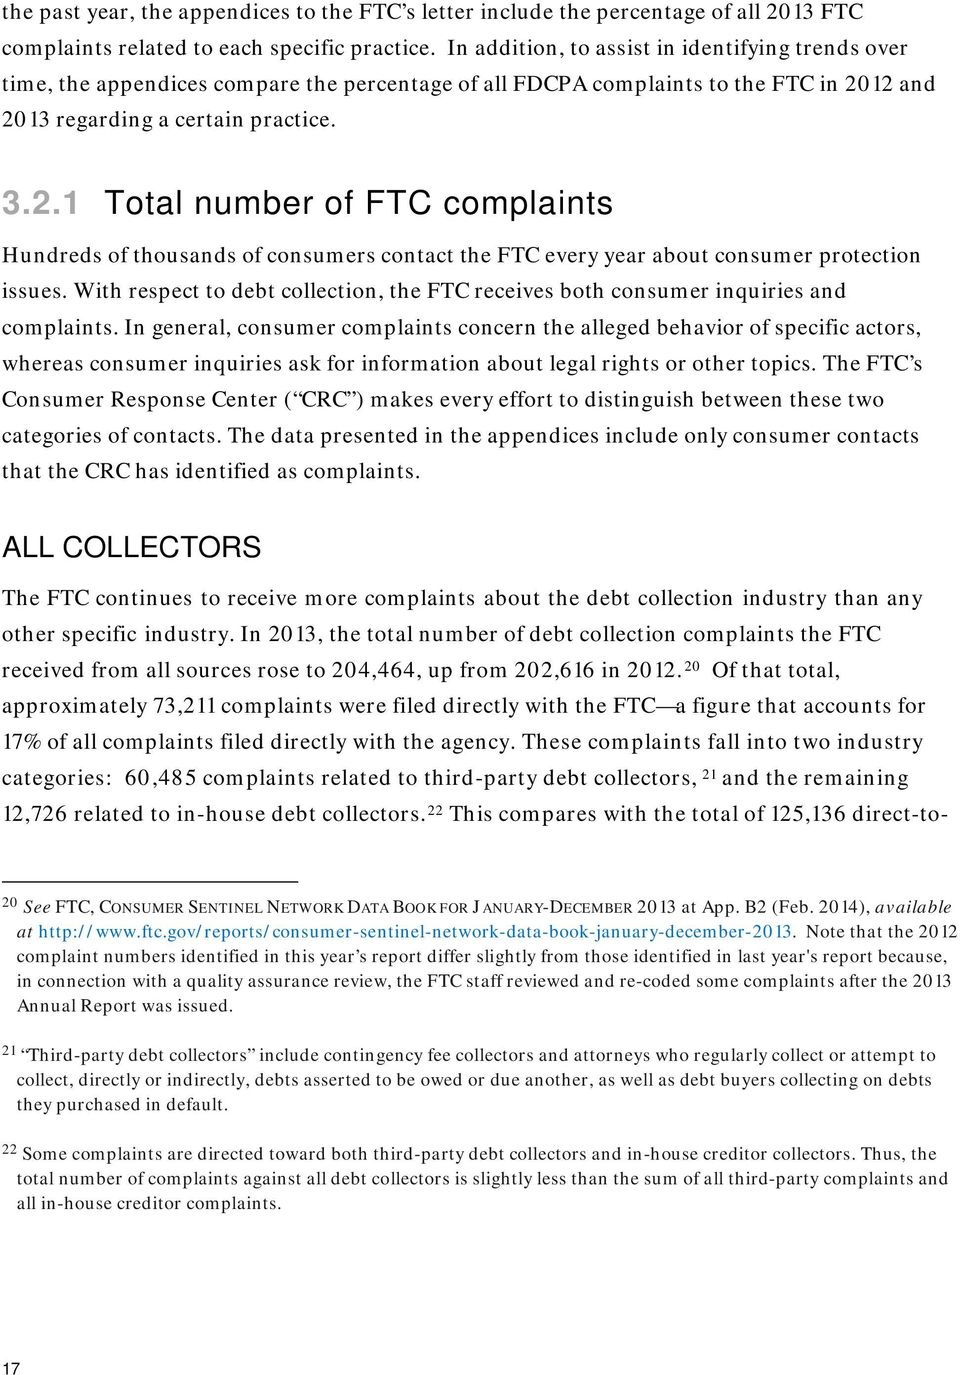 12 and 2013 regarding a certain practice. 3.2.1 Total number of FTC complaints Hundreds of thousands of consumers contact the FTC every year about consumer protection issues.